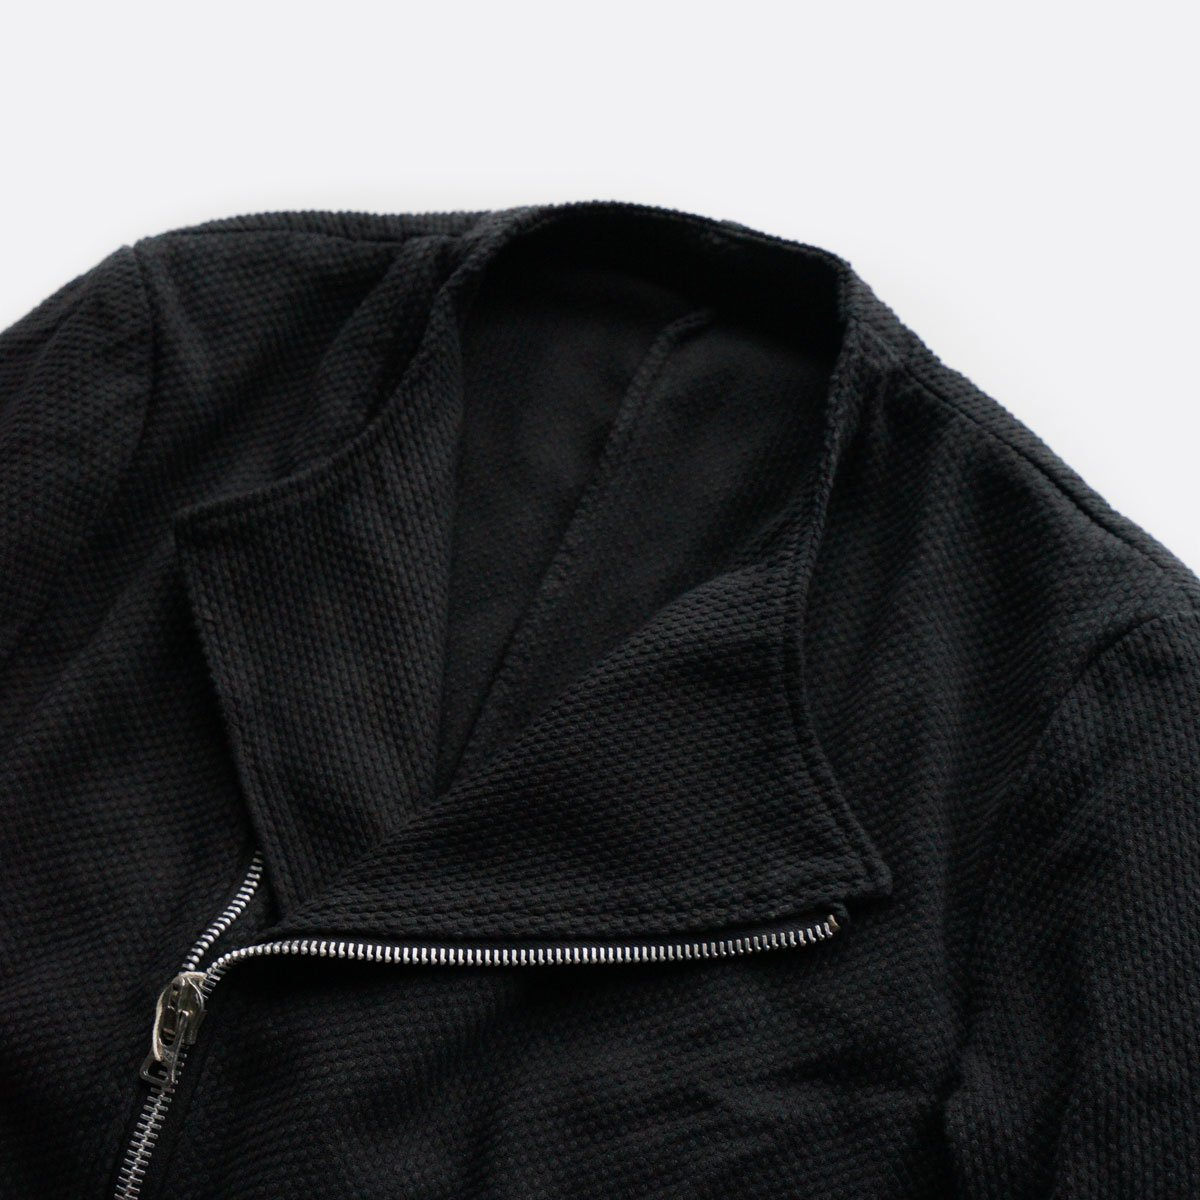 COLINA Sashiko W-Riders Jacket  (Antique black)3